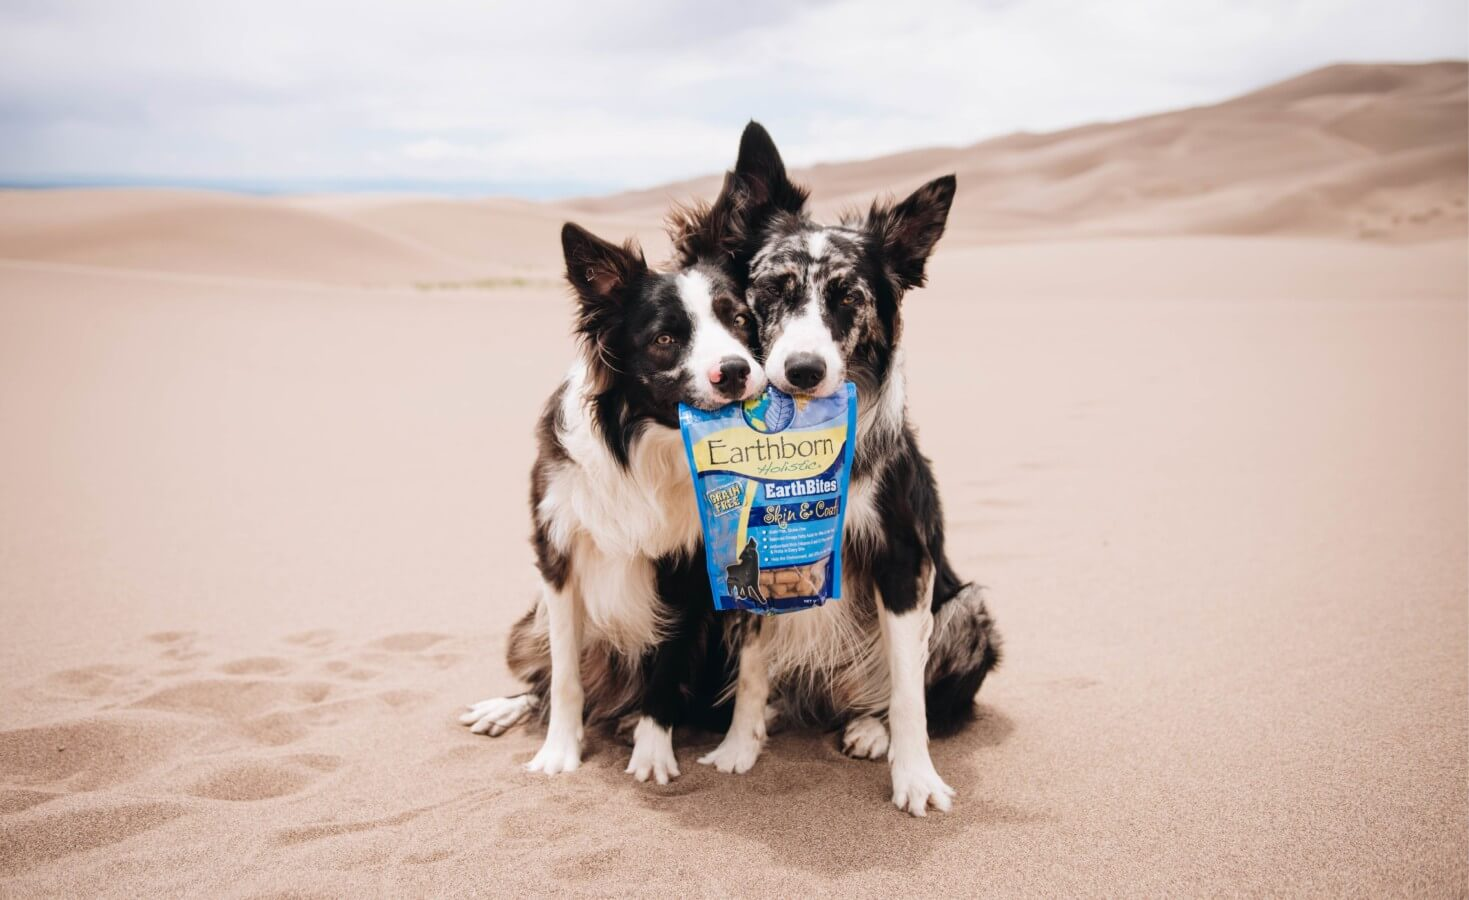 Two dogs sit together in the desert both holding a corner of a bag of dog treats